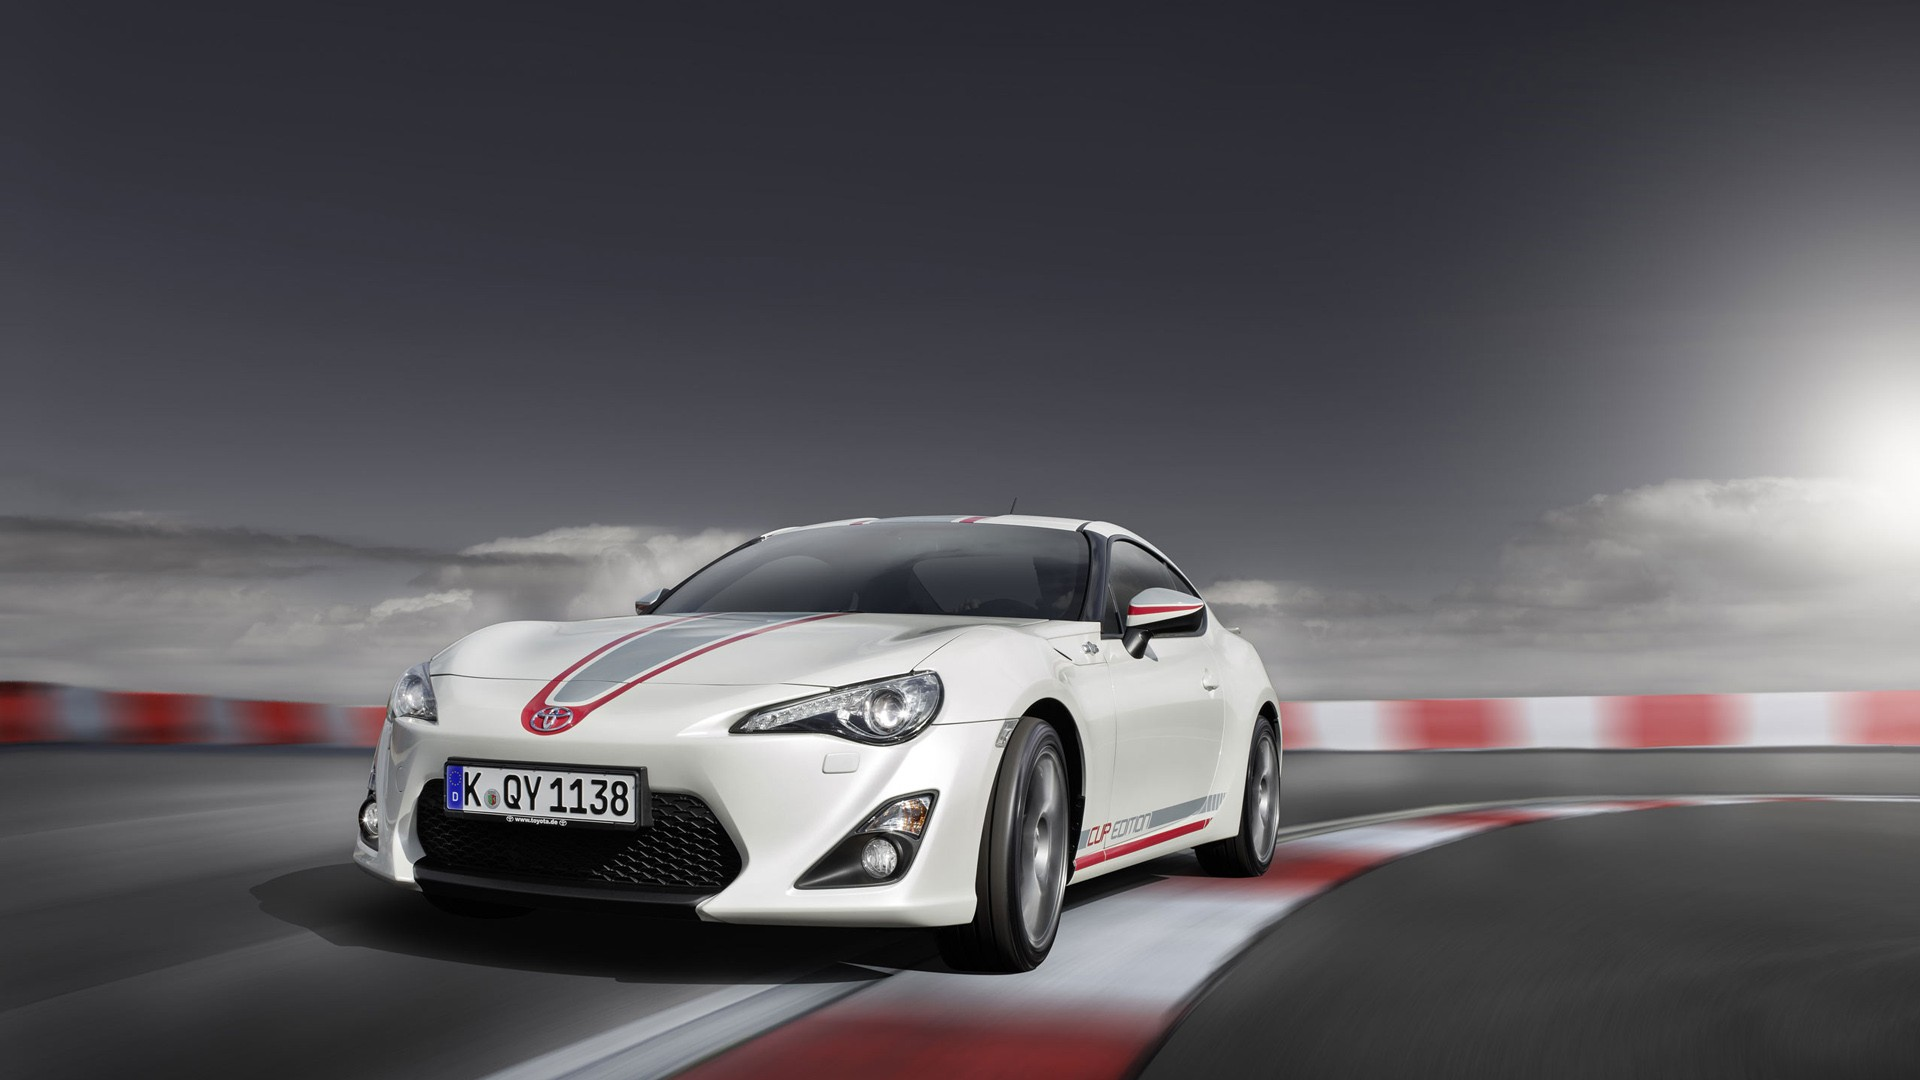 2014 Toyota GT 86 Cup Edition Wallpaper in 1920x1080 1920x1080